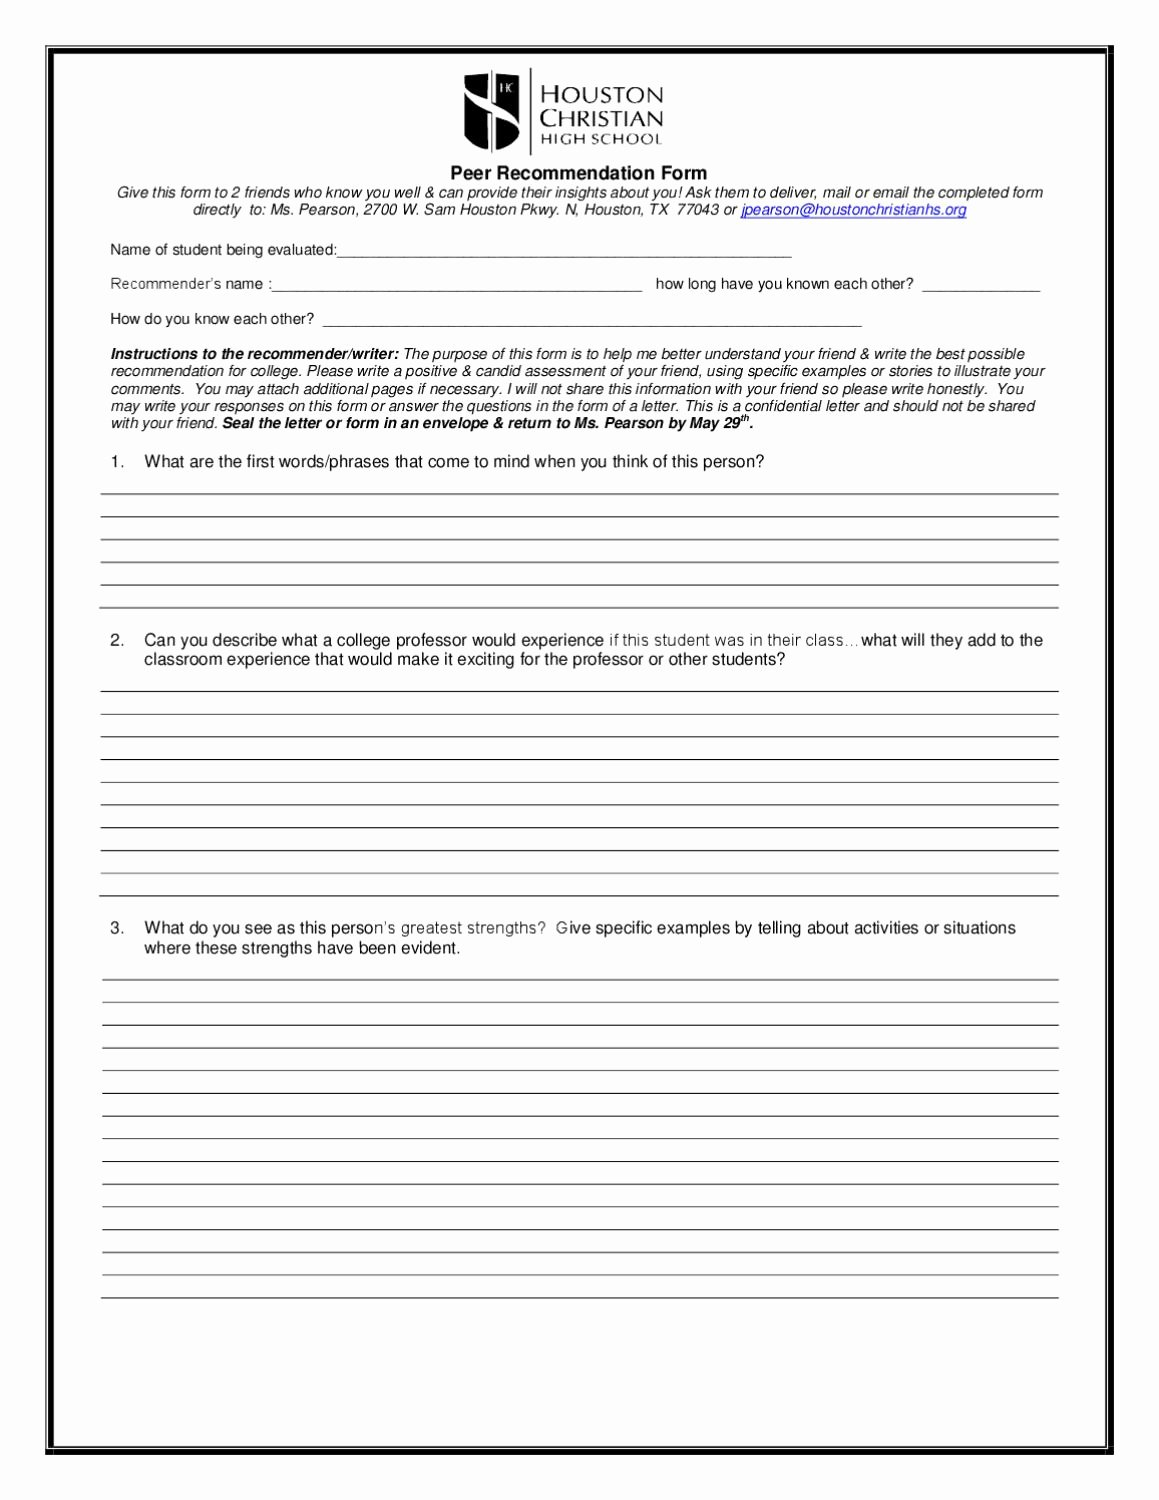 Peer Recommendation Letter Example Best Of Peer Re Mendation form by Hc Munications issuu